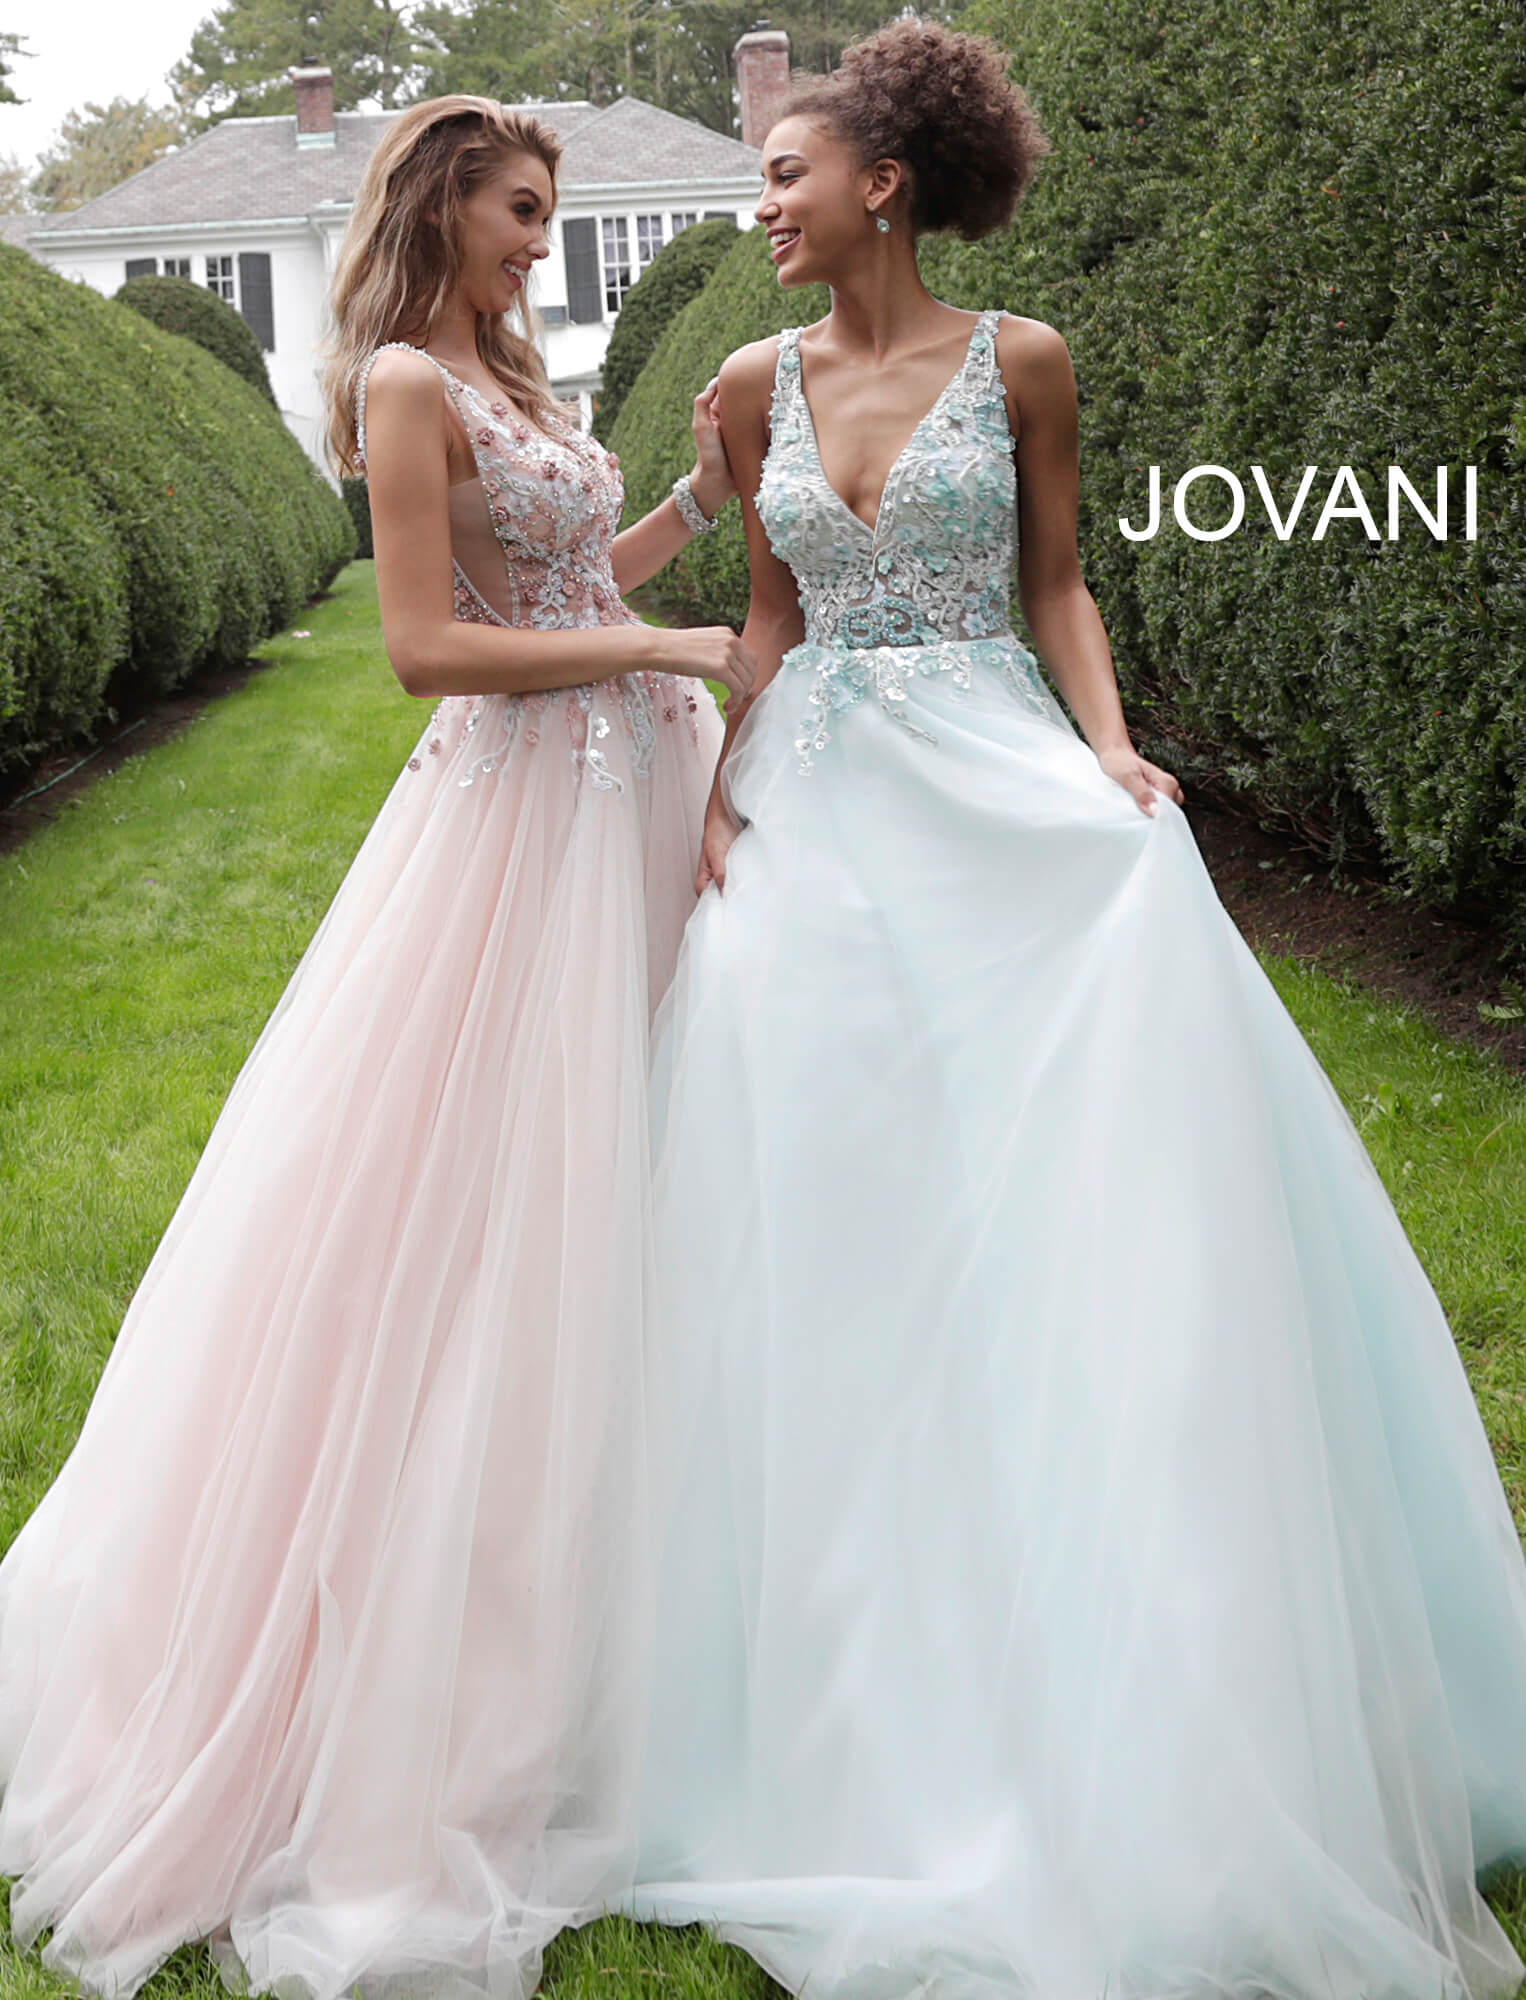 jovani Floral Embellished V Neck Jovani Ballgown 61109 on mobile 6